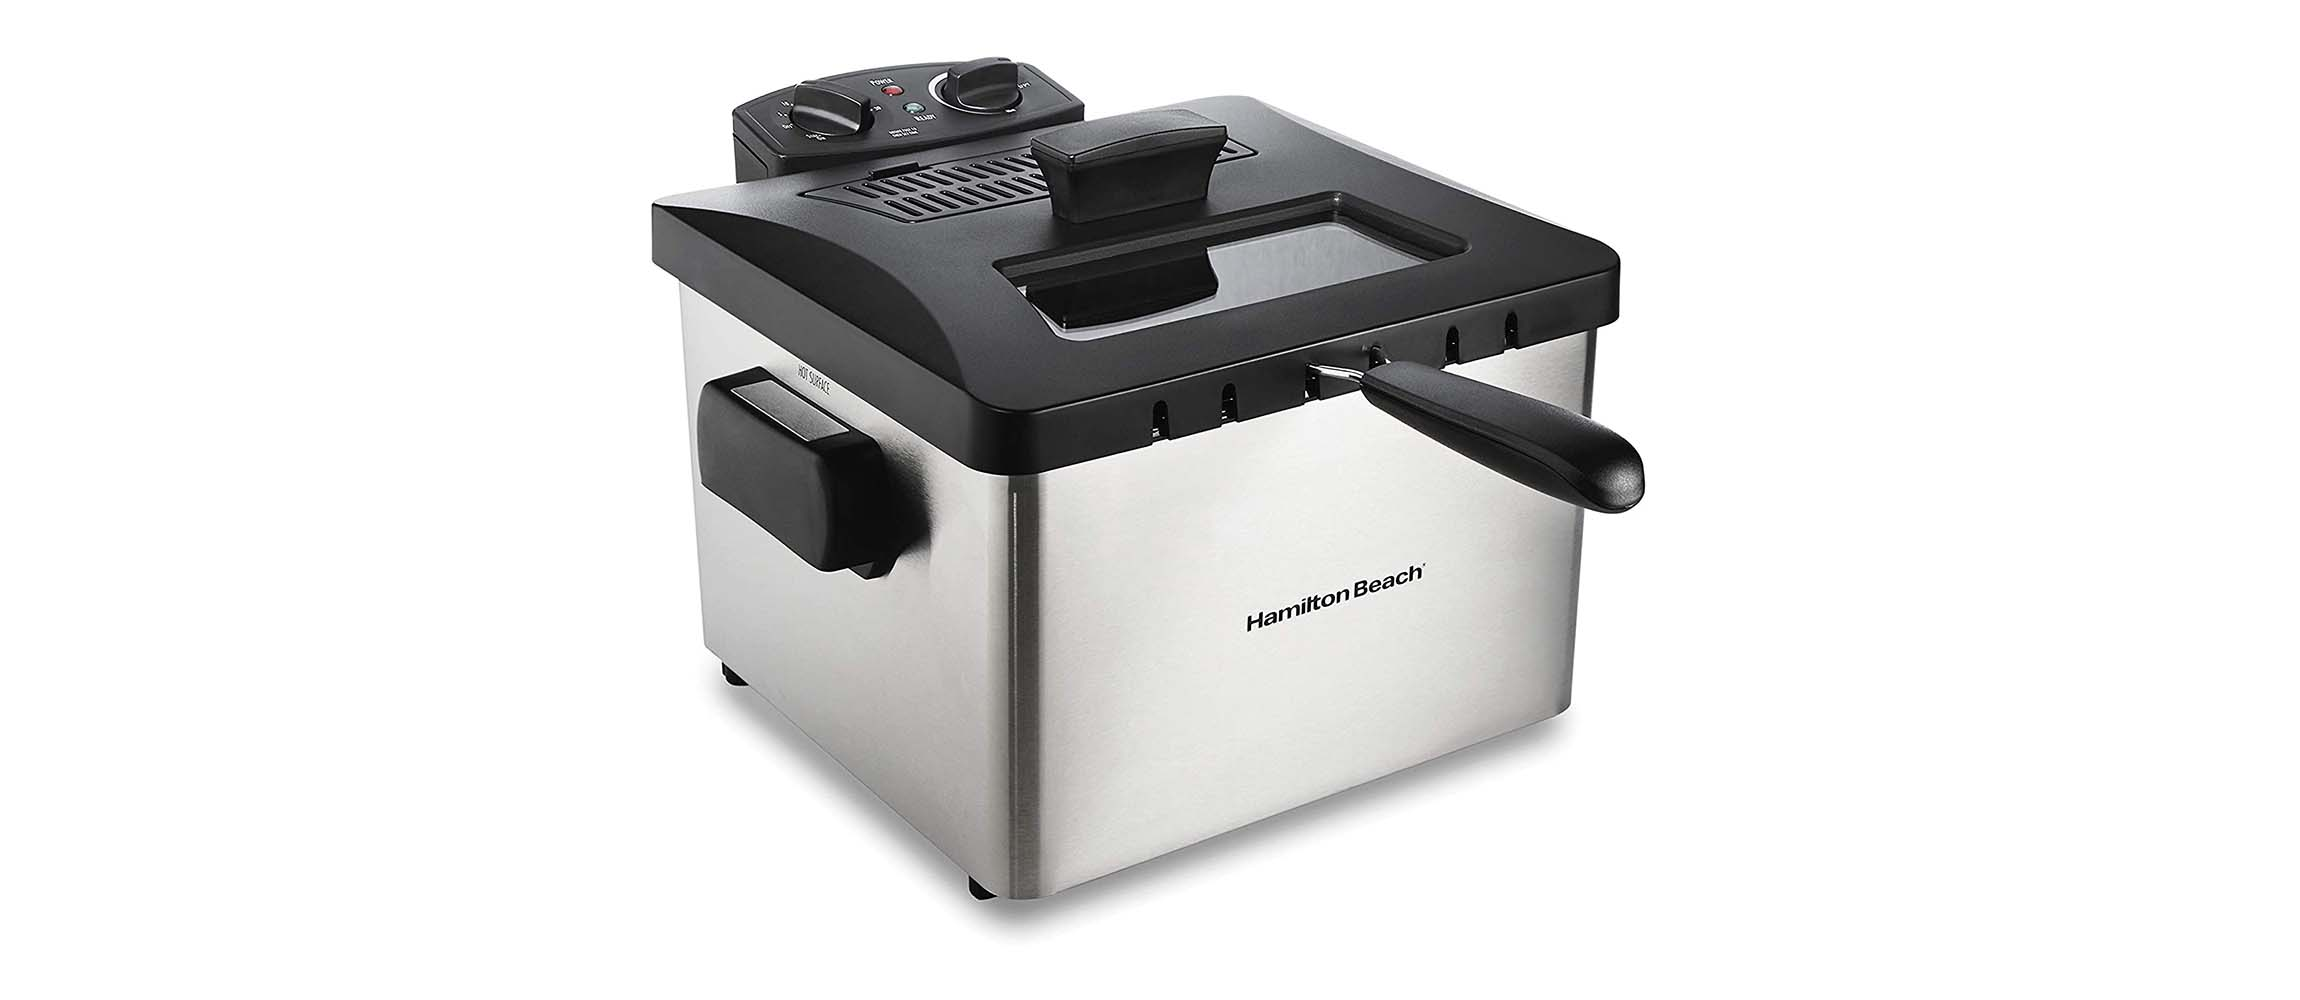 Hamilton Beach 35035 Deep Fryer